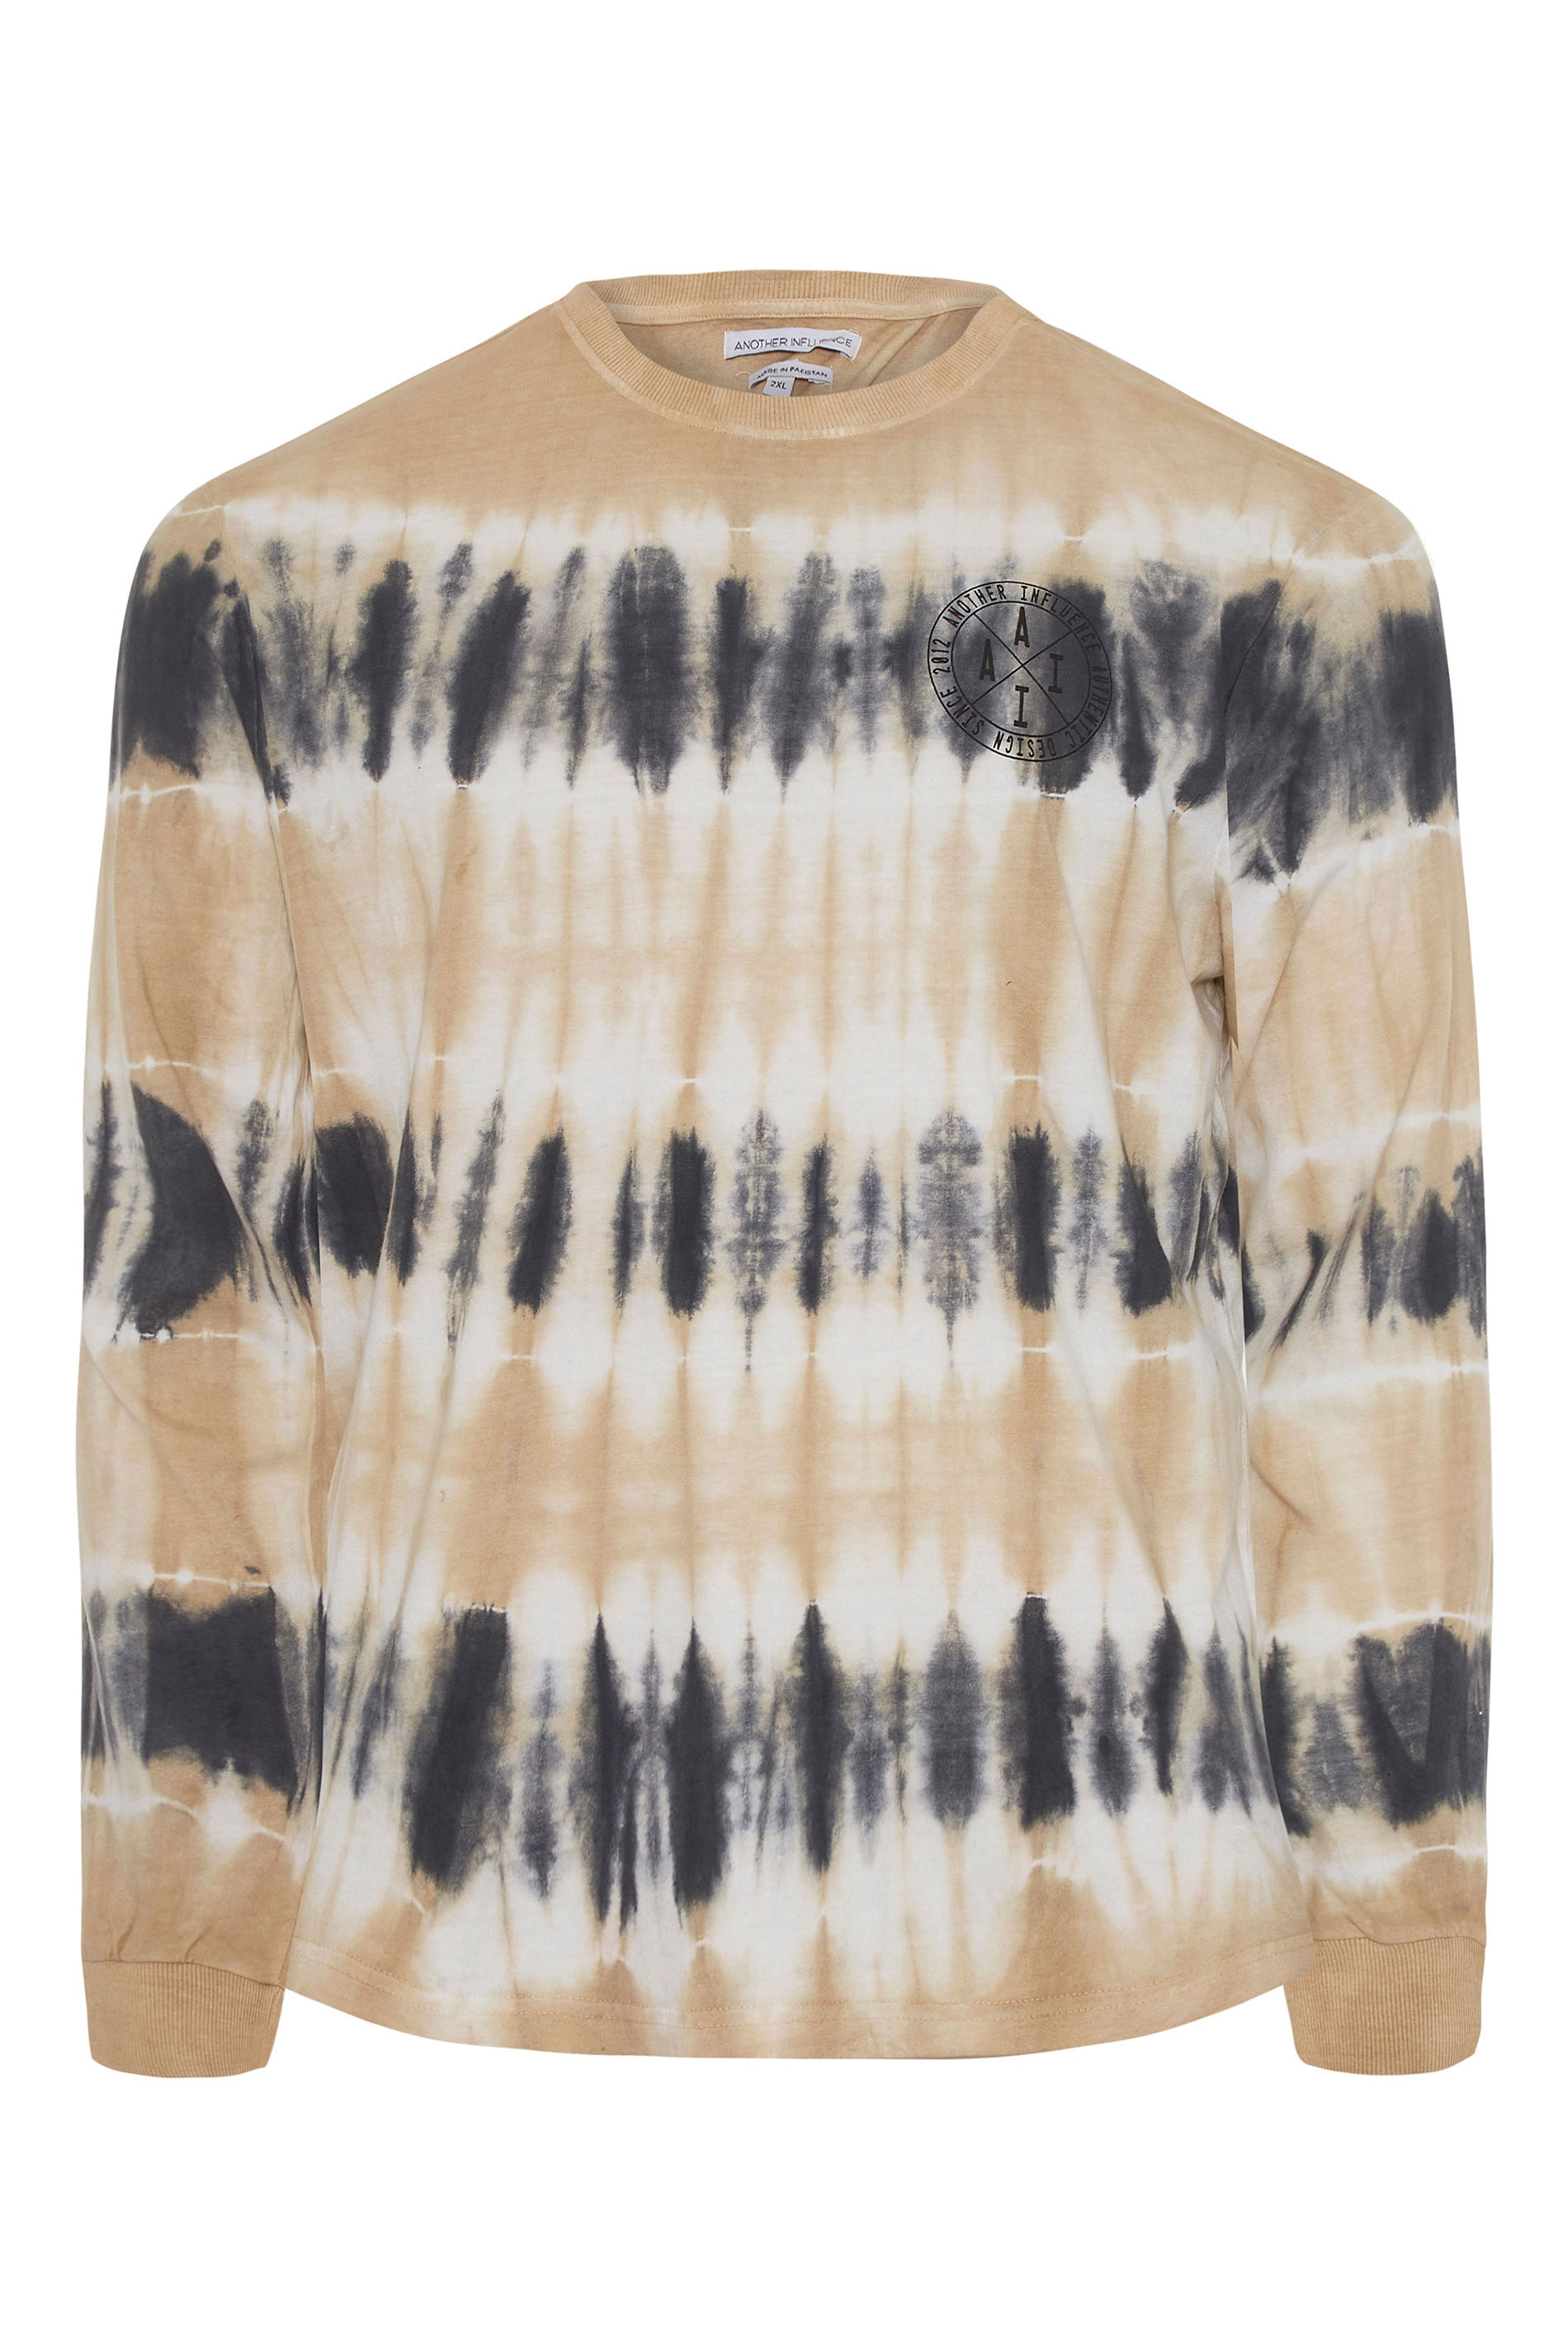 ANOTHER INFLUENCE Charcoal Long Sleeve Tie Dye T-Shirt_F.jpg